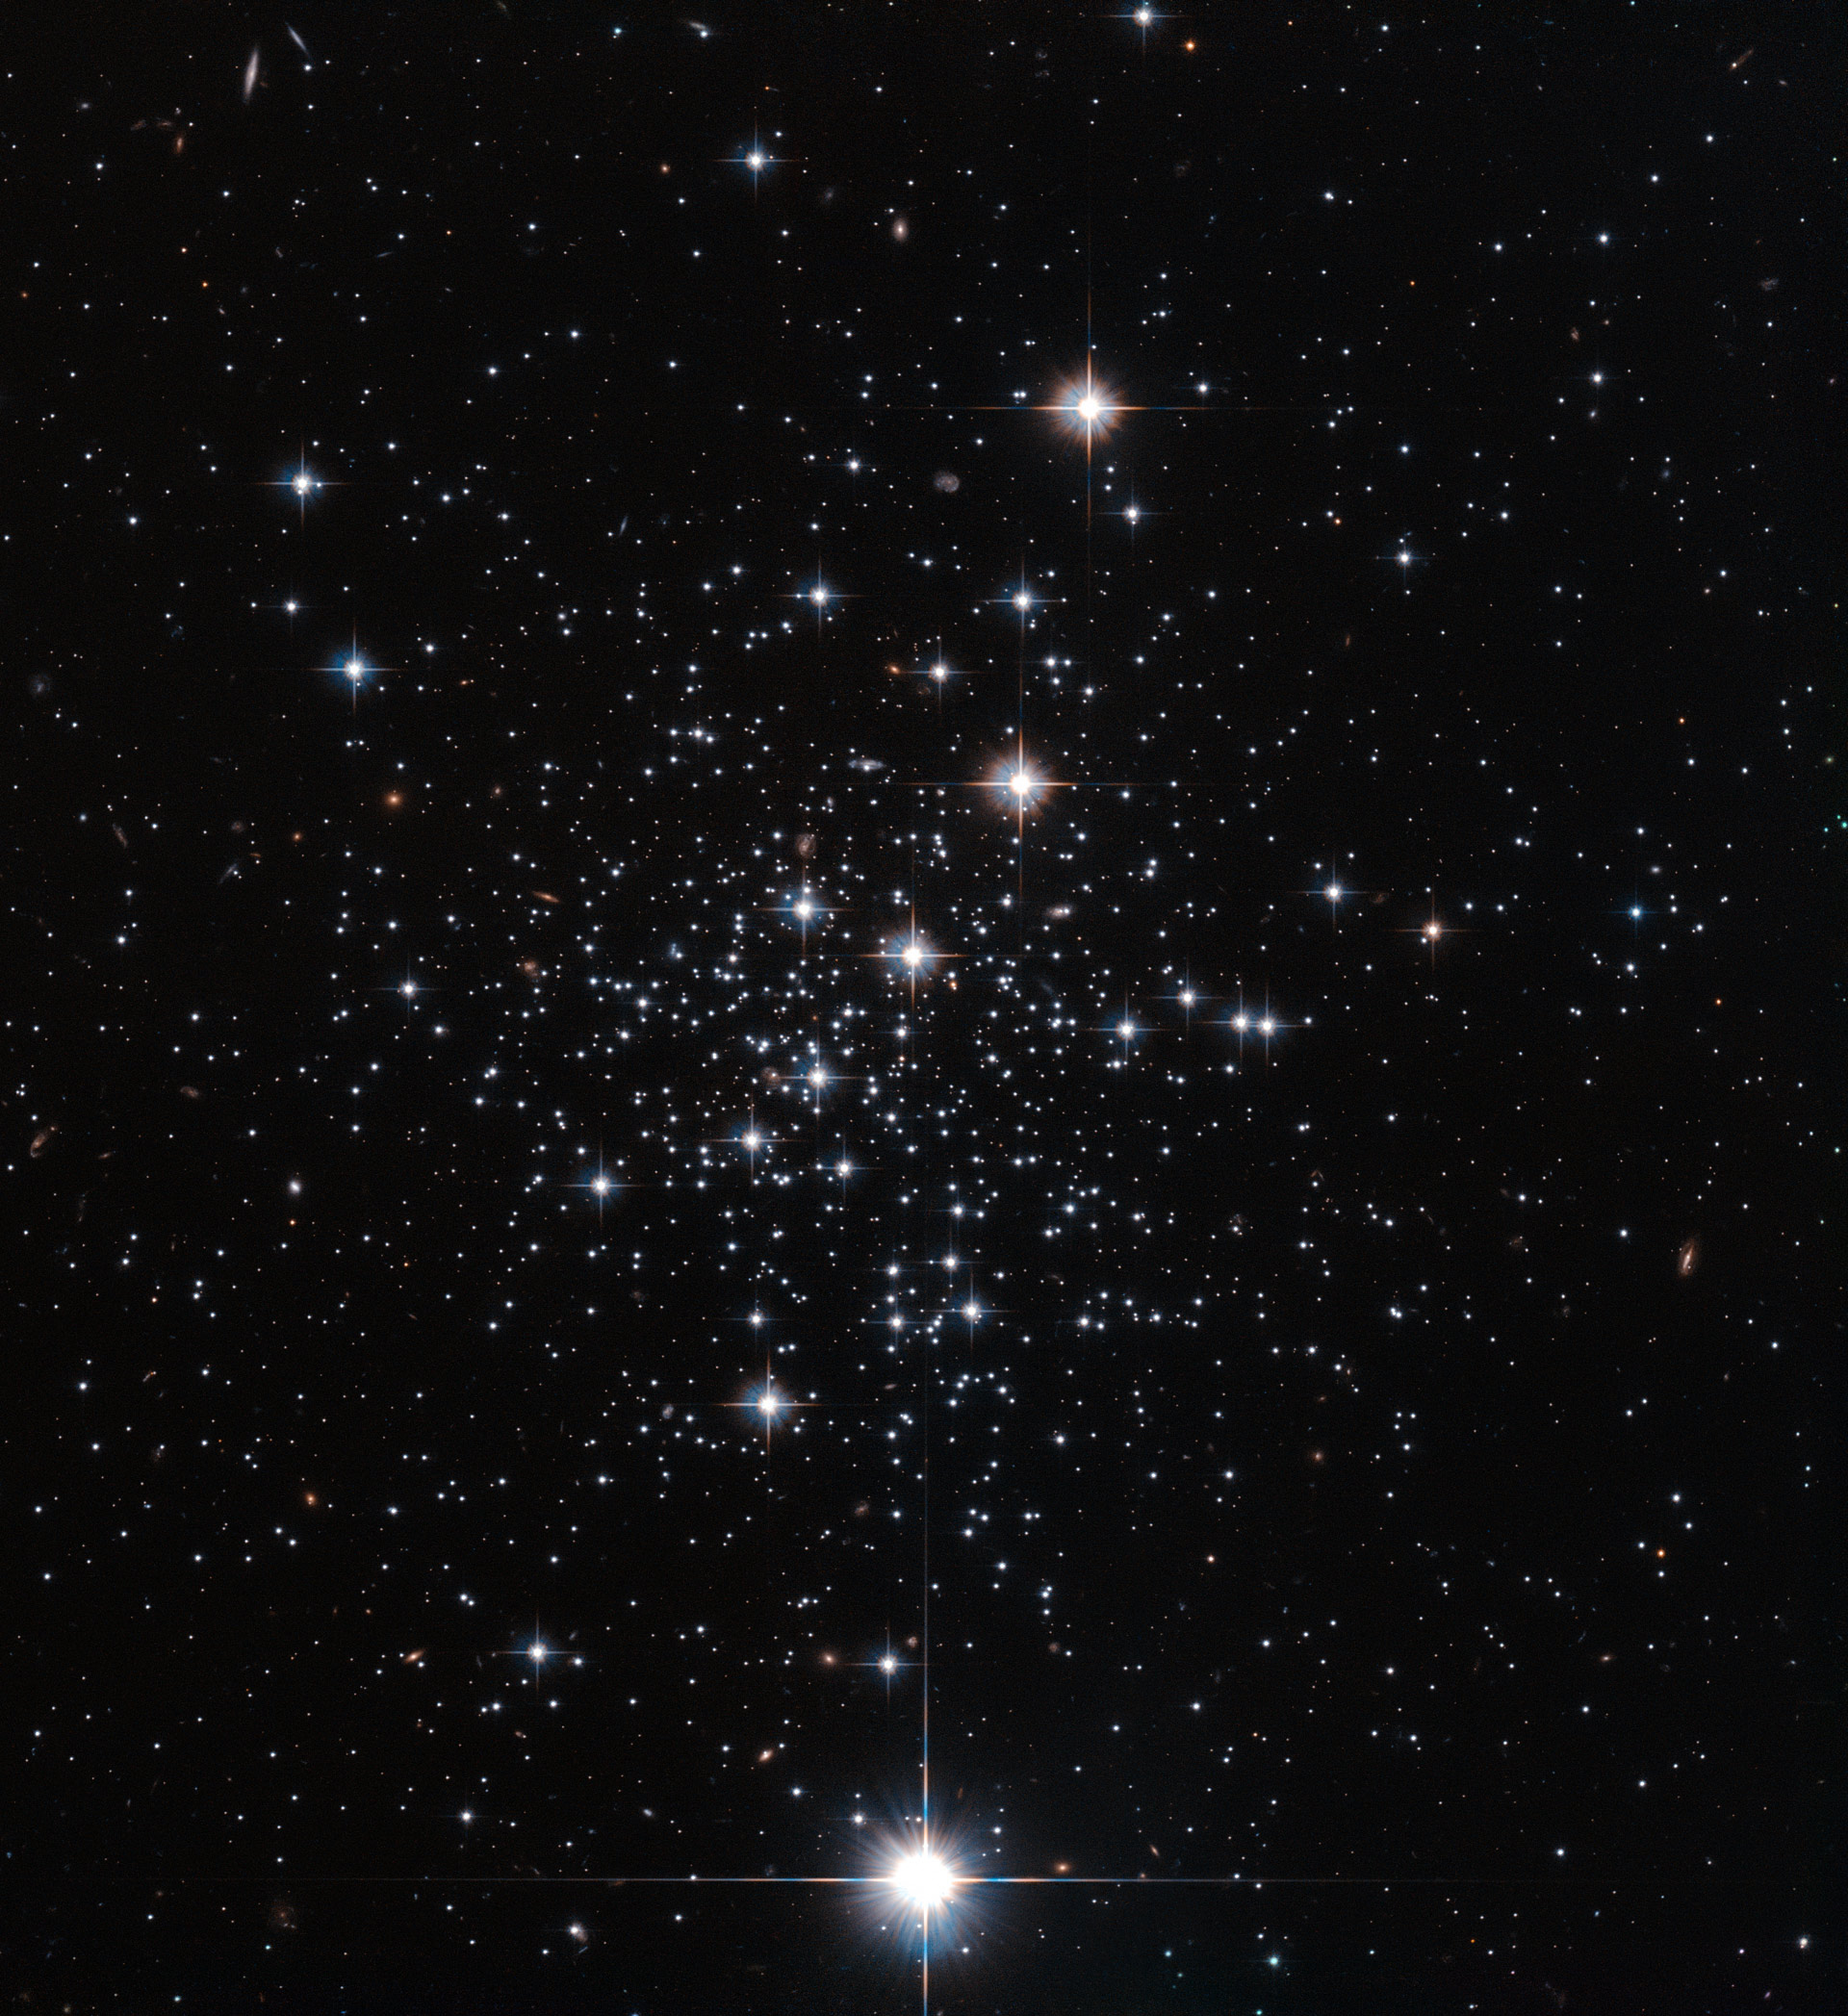 Hubble Views Globular Cluster Palomar 12